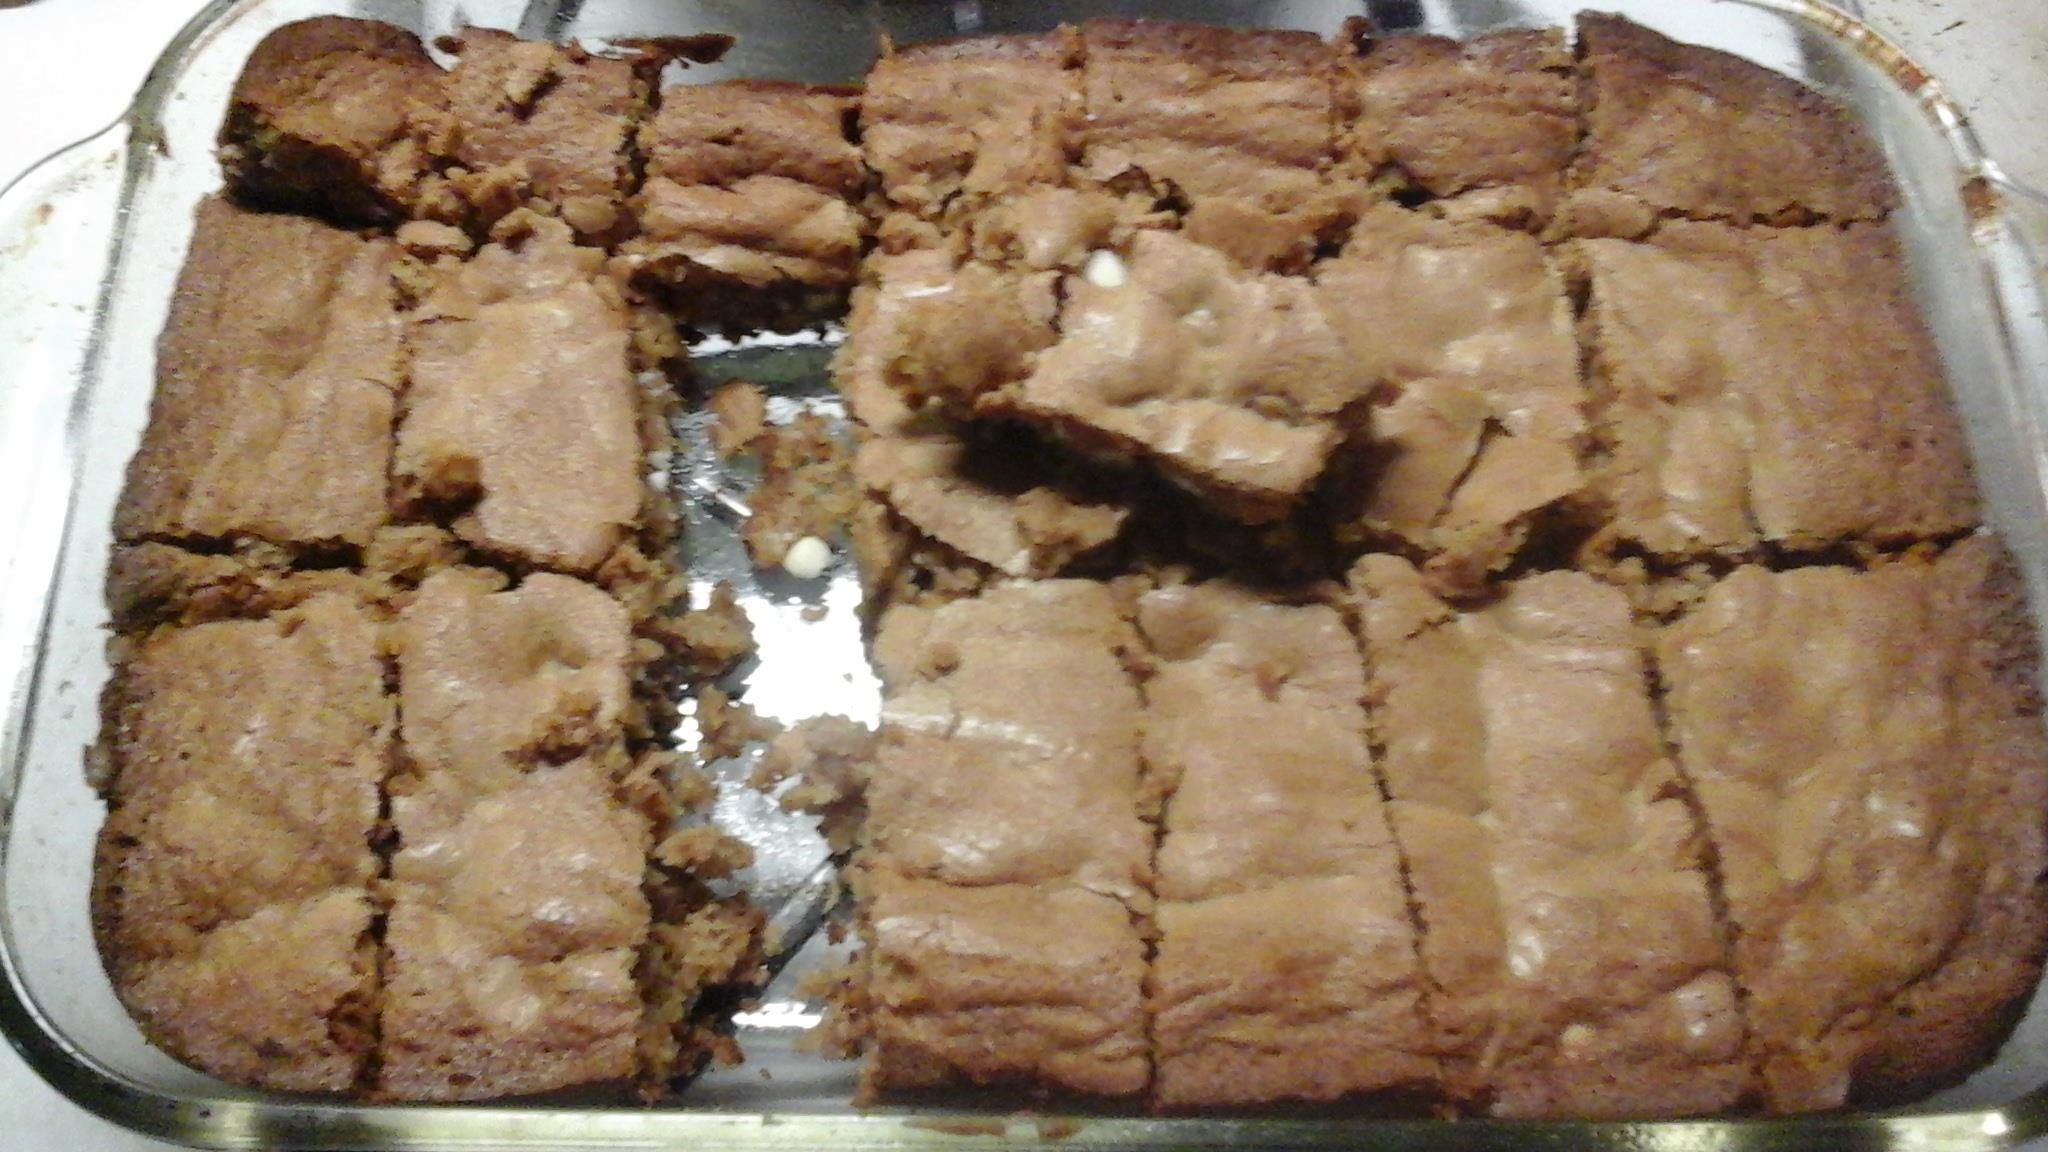 Robin's Blond Brownies